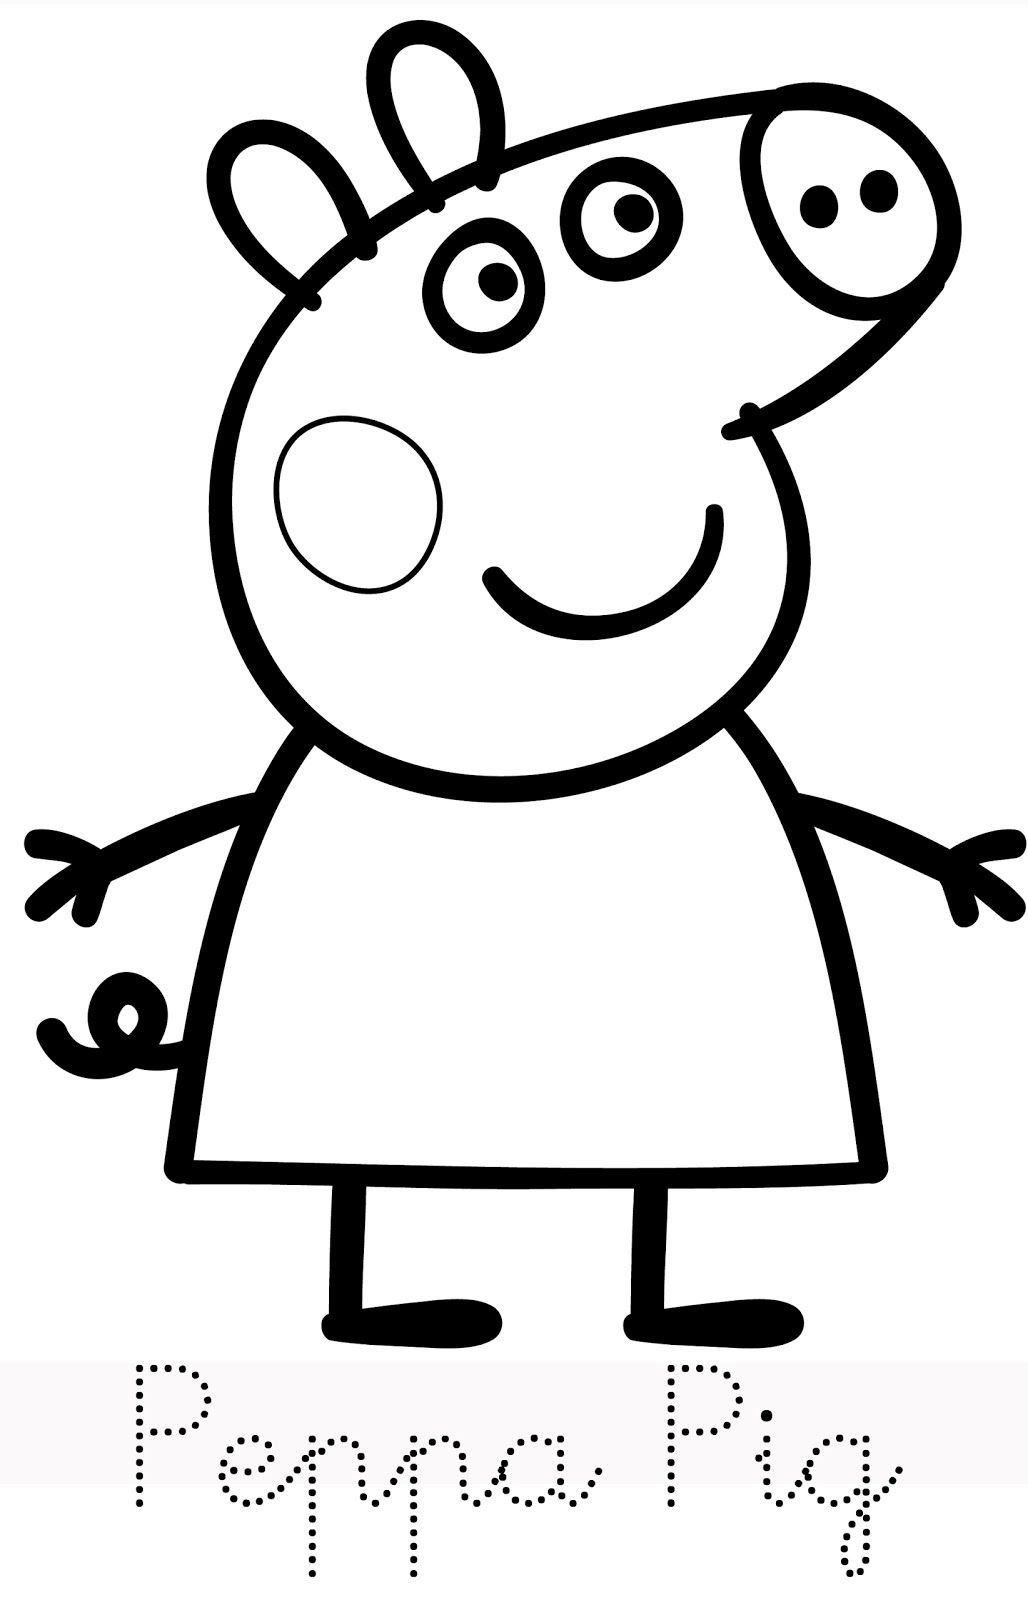 hello peppa pig and her family is here print trace and colour